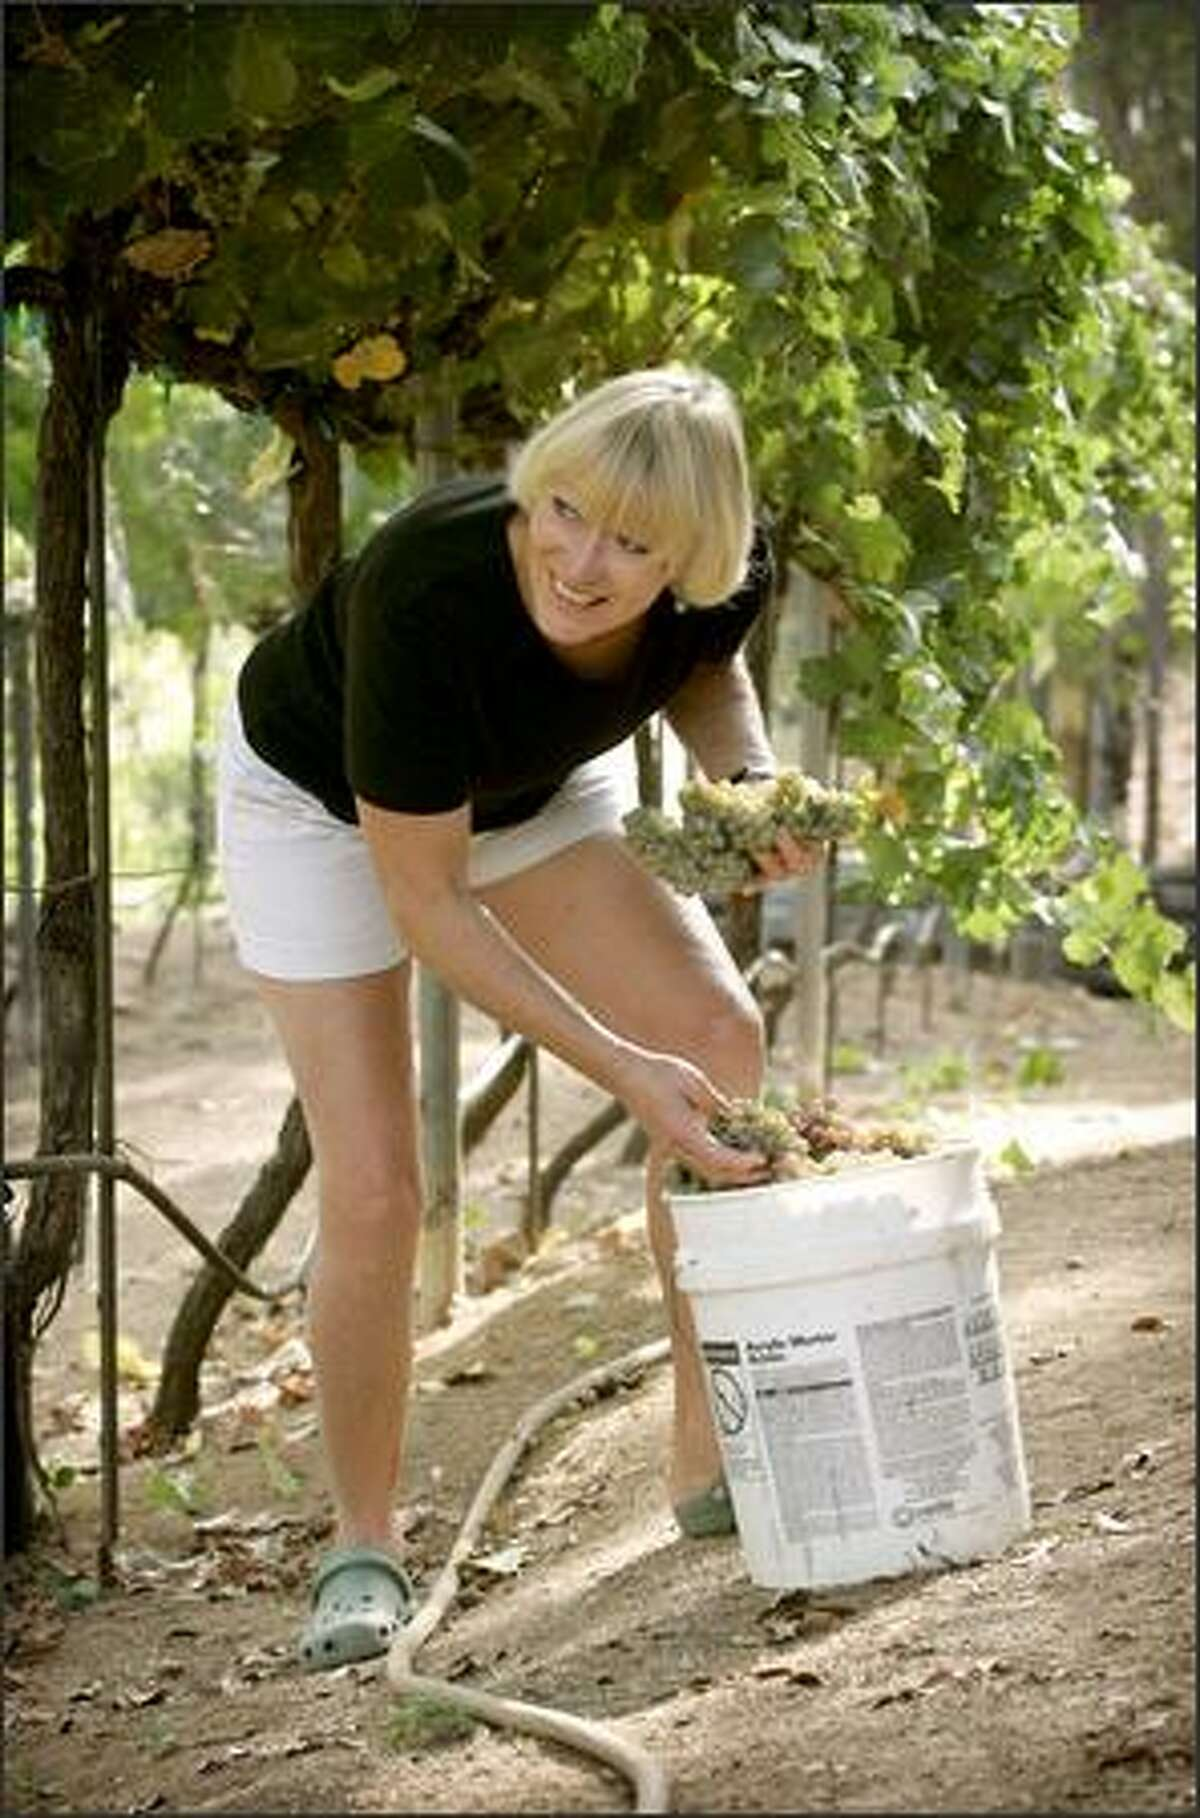 Patty Johnson picks grapes she and her husband, Bob Weirich, will use to make wine at their home in Ramona, Calif., which is outside San Diego. The couple own 2 1/2 acres.